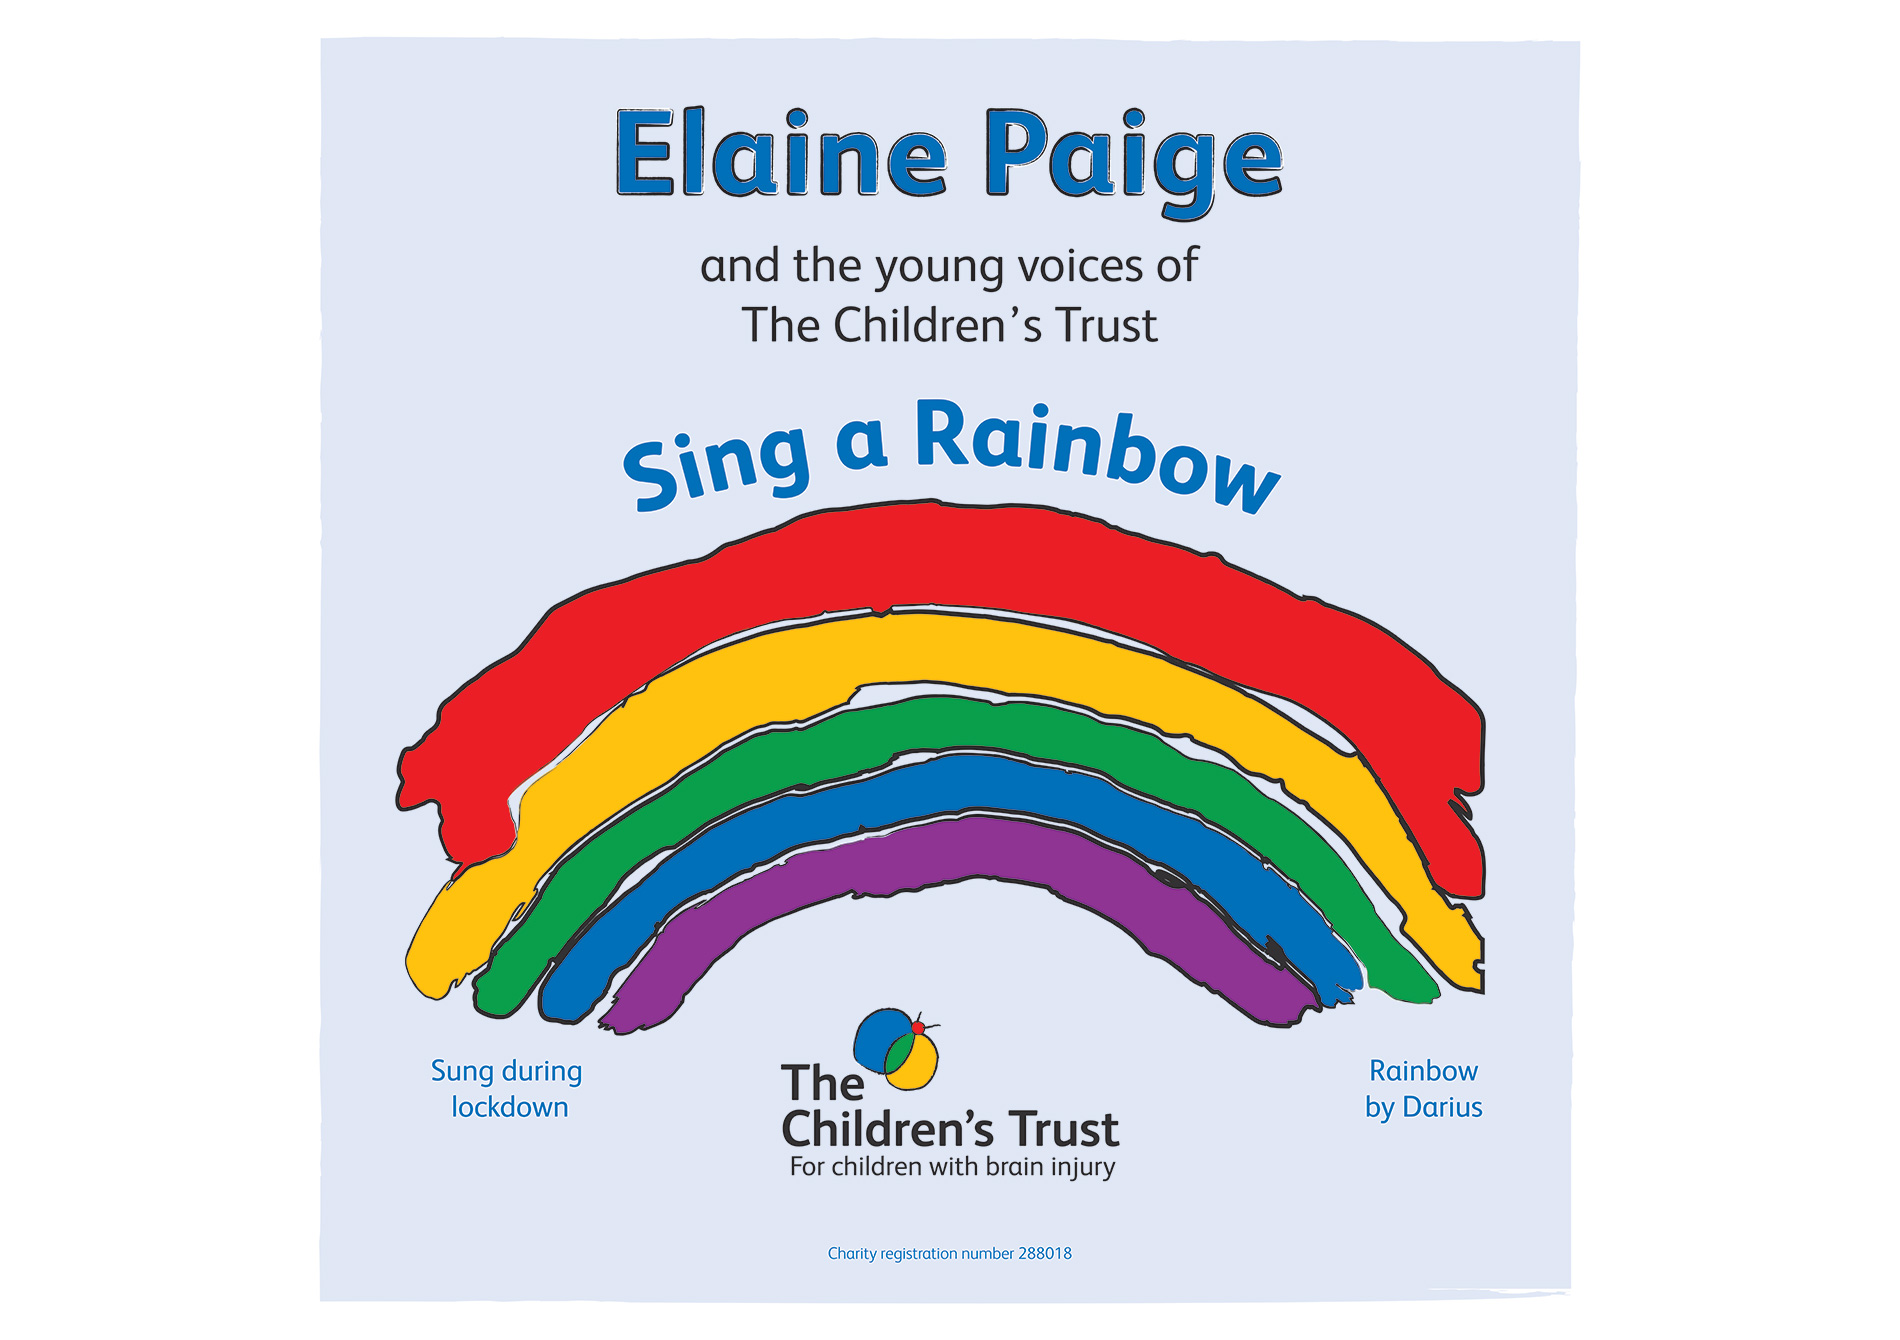 Elaine Paige and the young voices of The Children's Trust - Sing a Rainbow